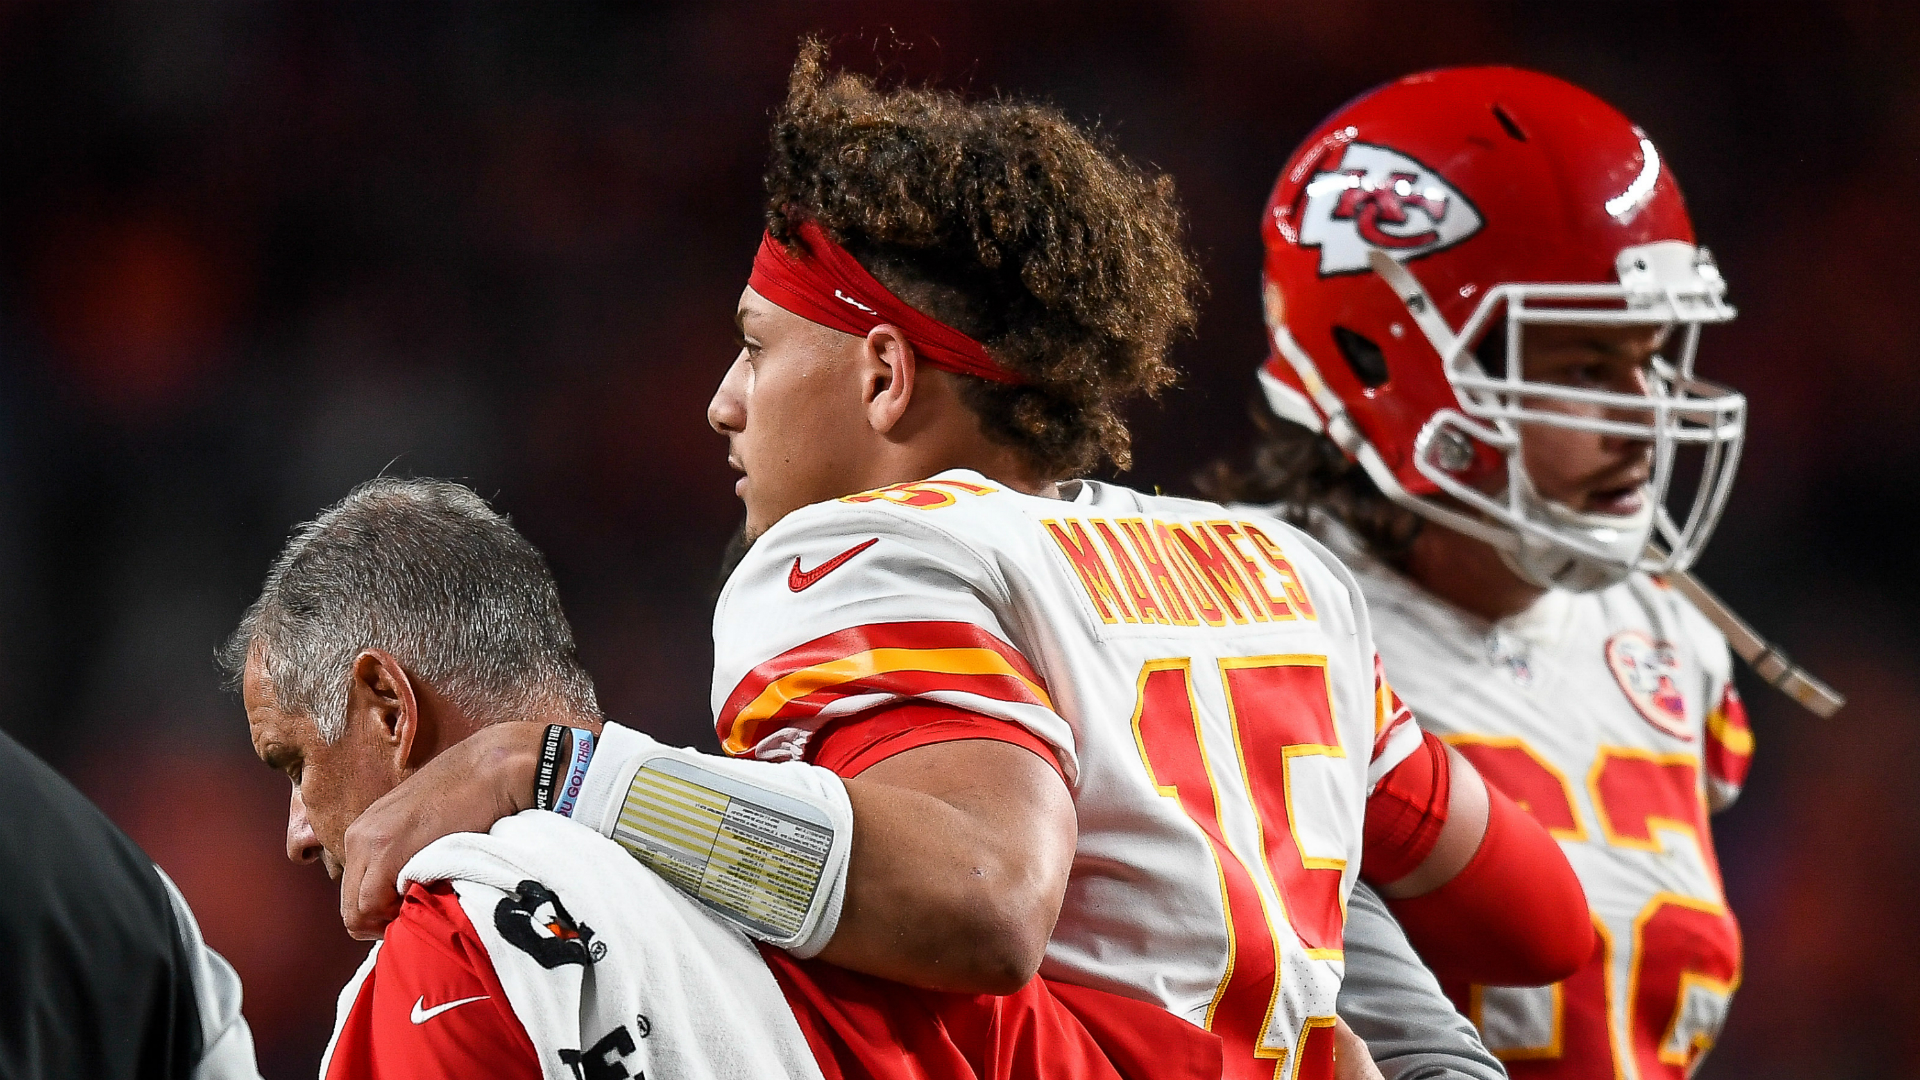 Patrick Mahomes injury update: Chiefs won't put timeline on QB's return